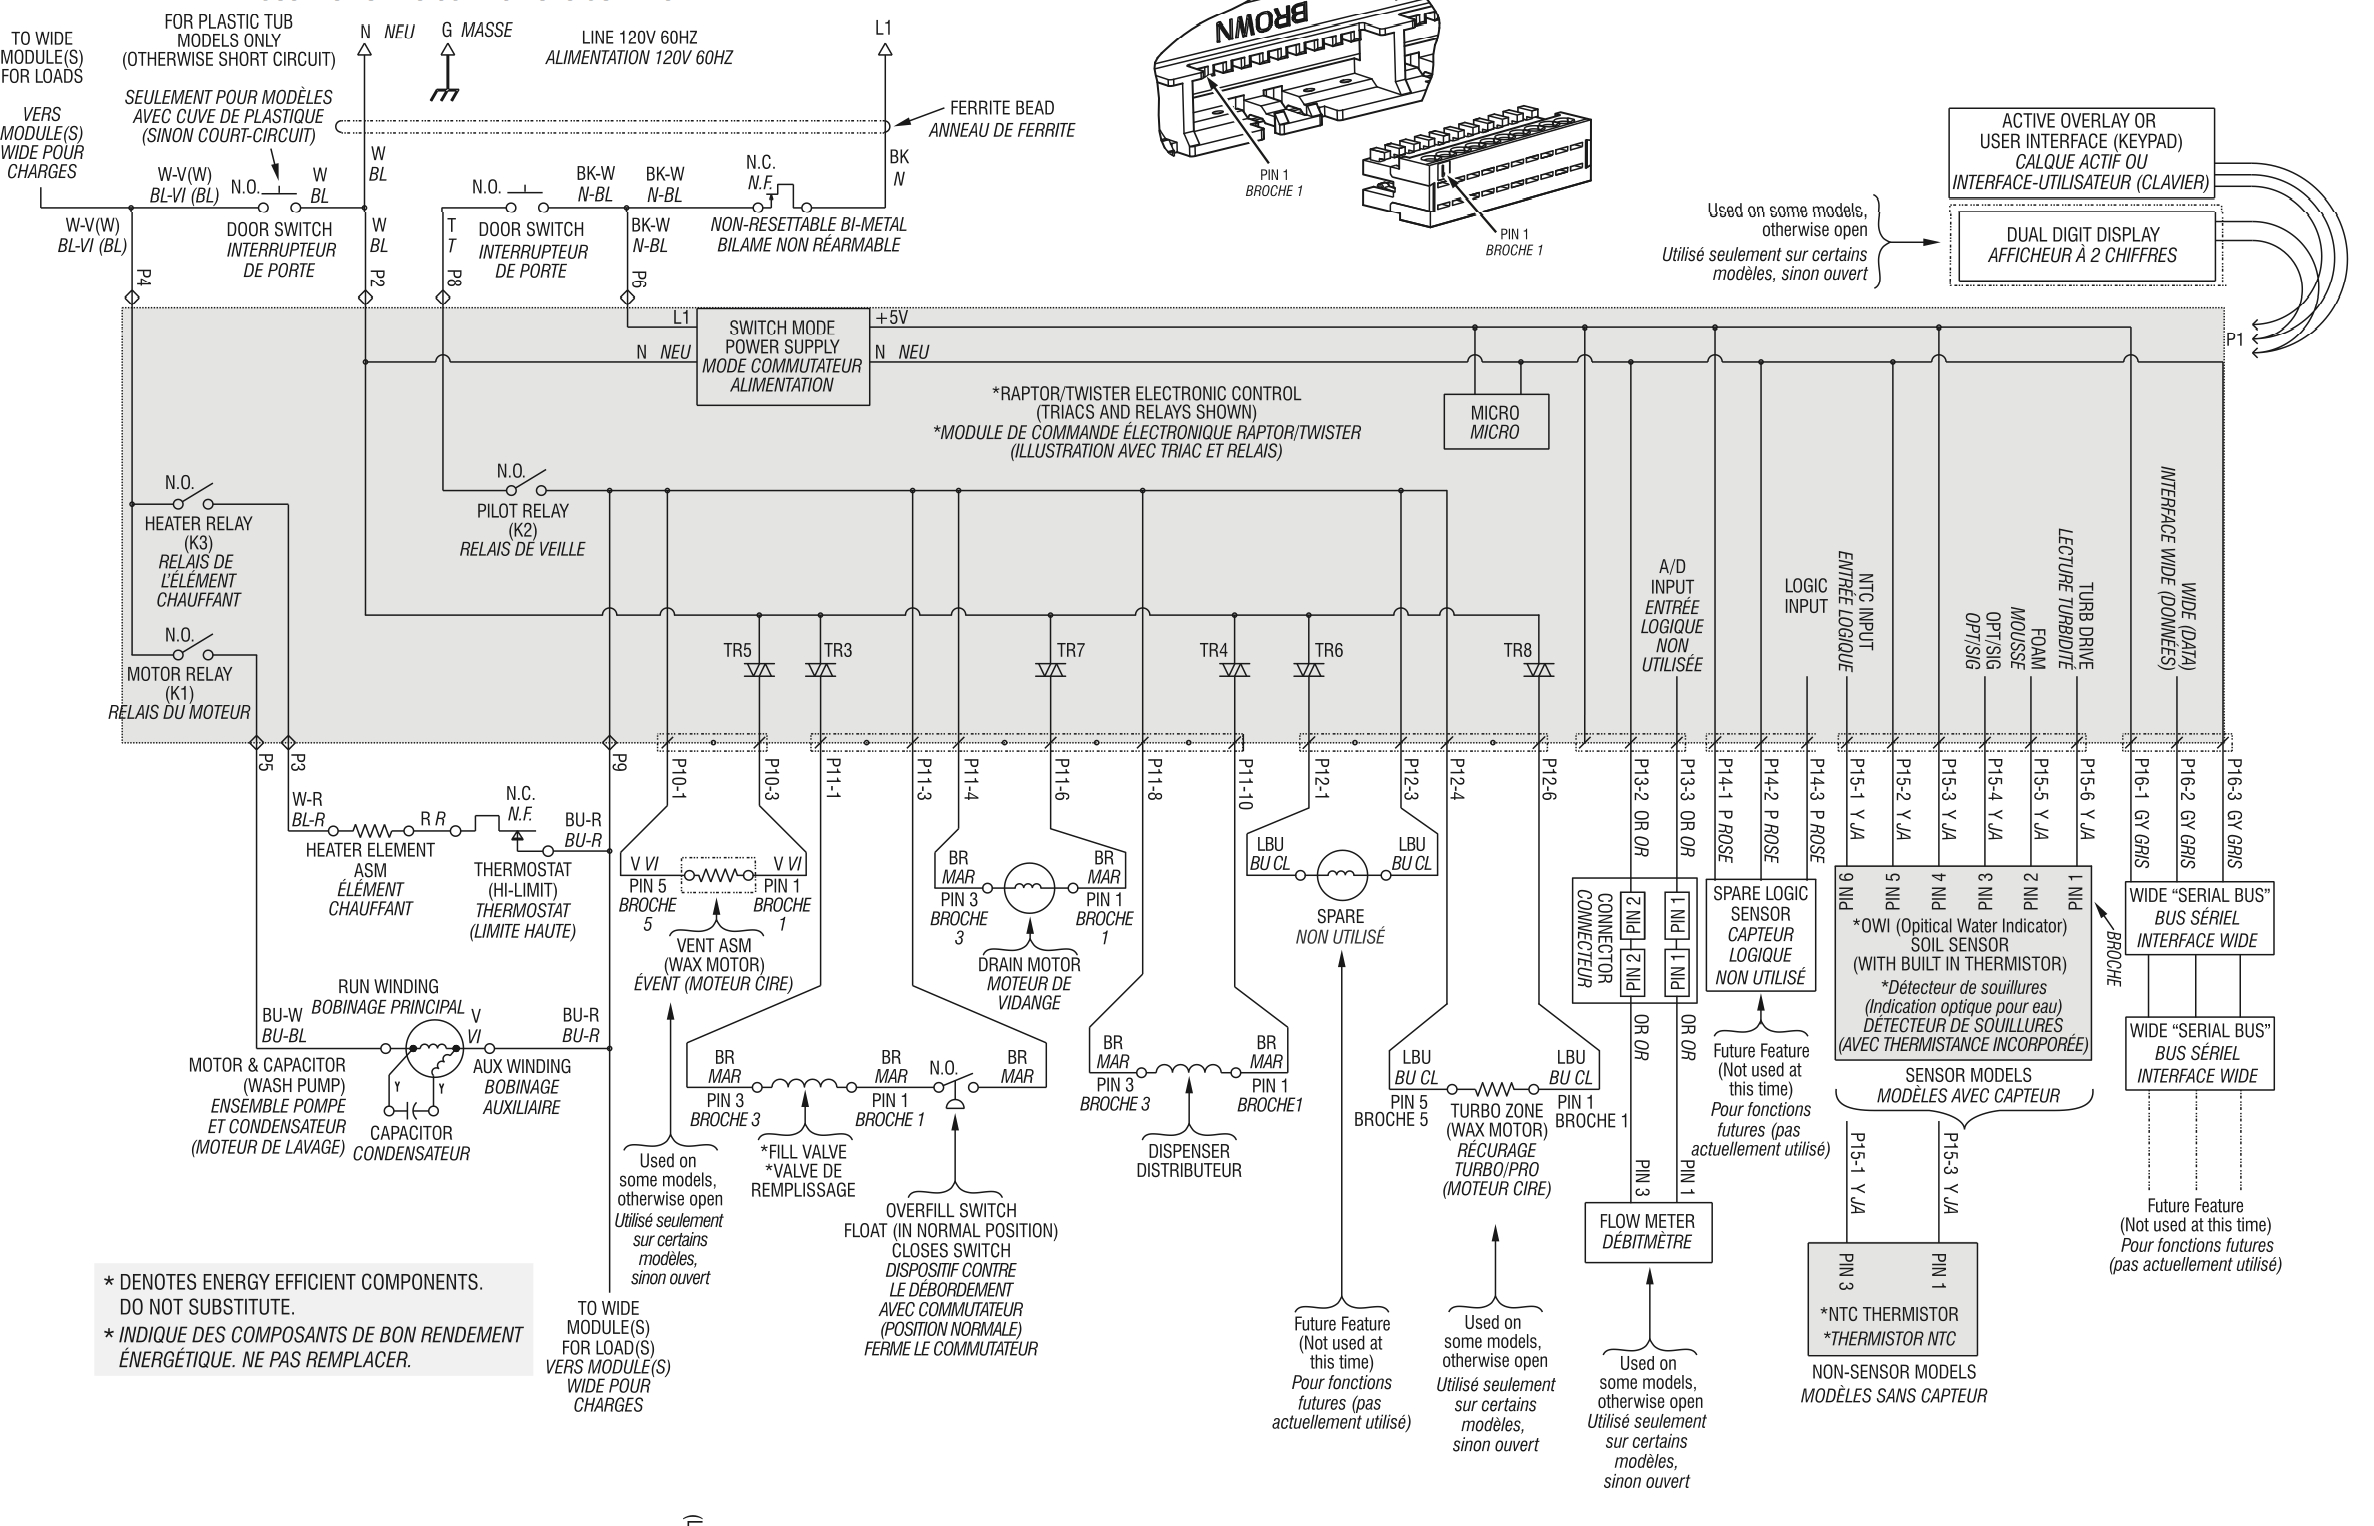 I Need A Wiring Diagram For A Mod Mdbh979Awb2 Dishwasher. It Is A - Ac Unit Wiring Diagram